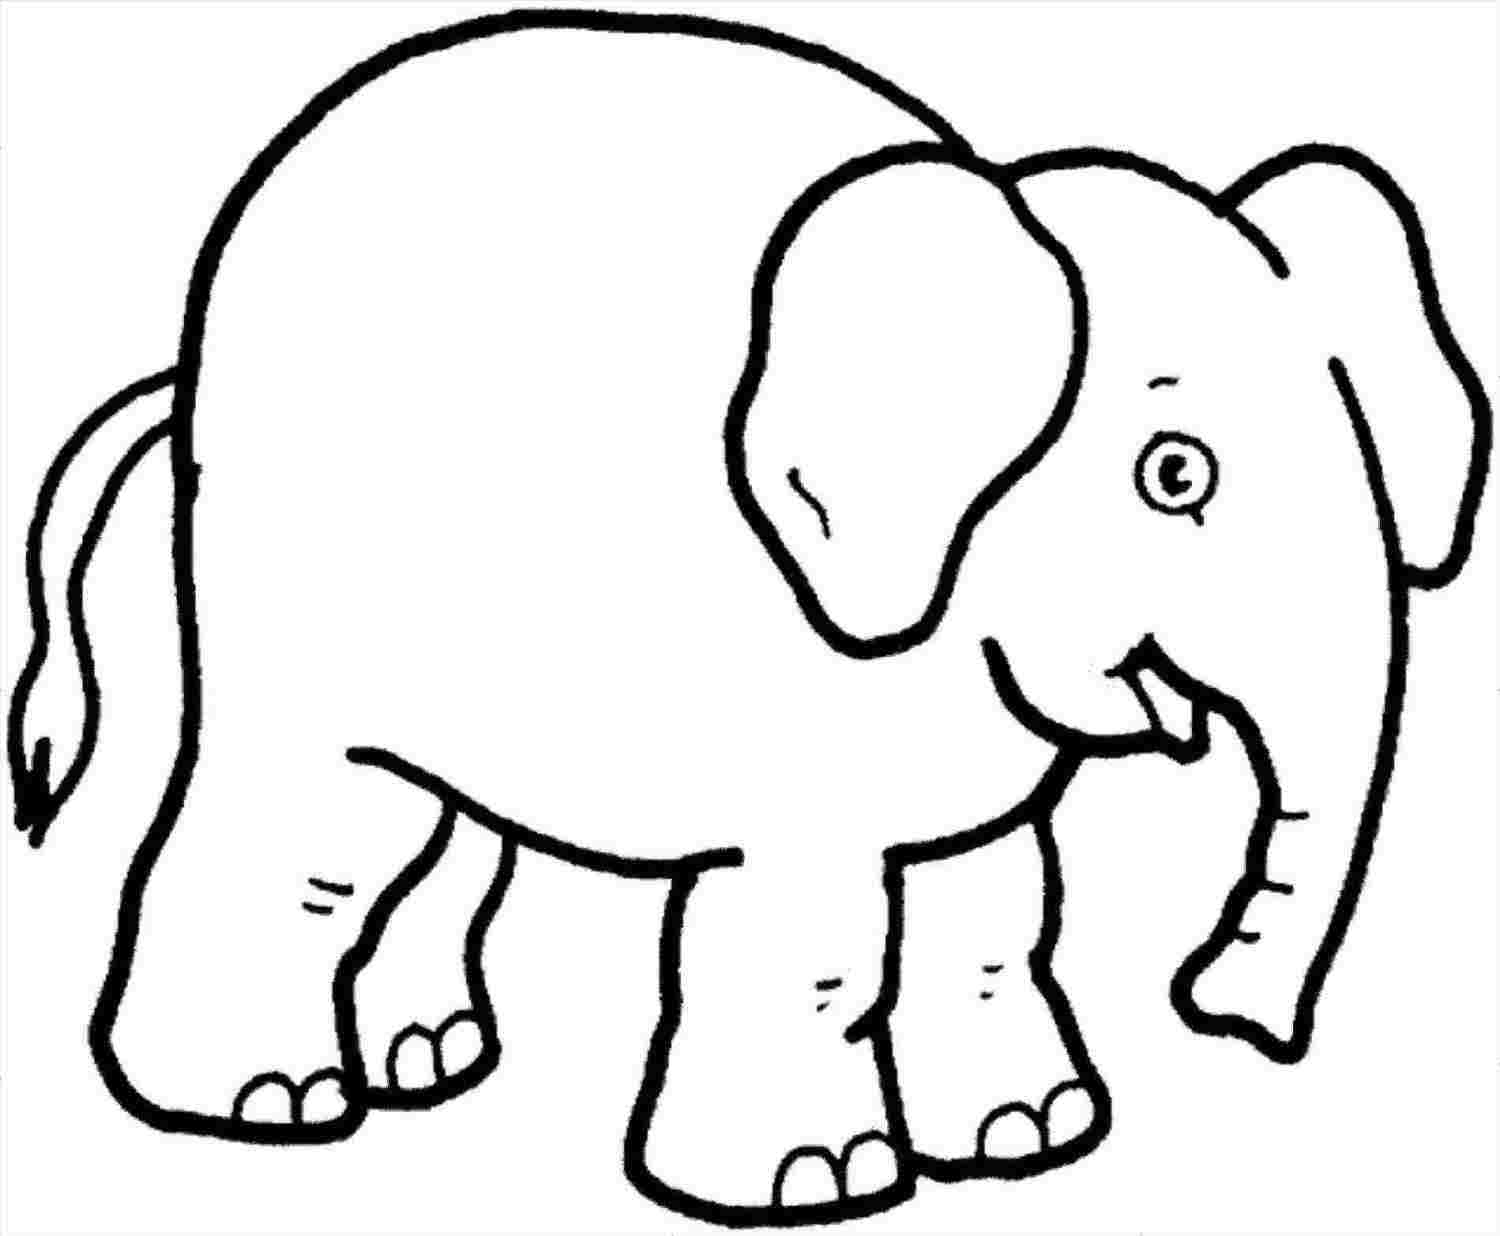 1500x1236 Easy Simple Elephant Drawing